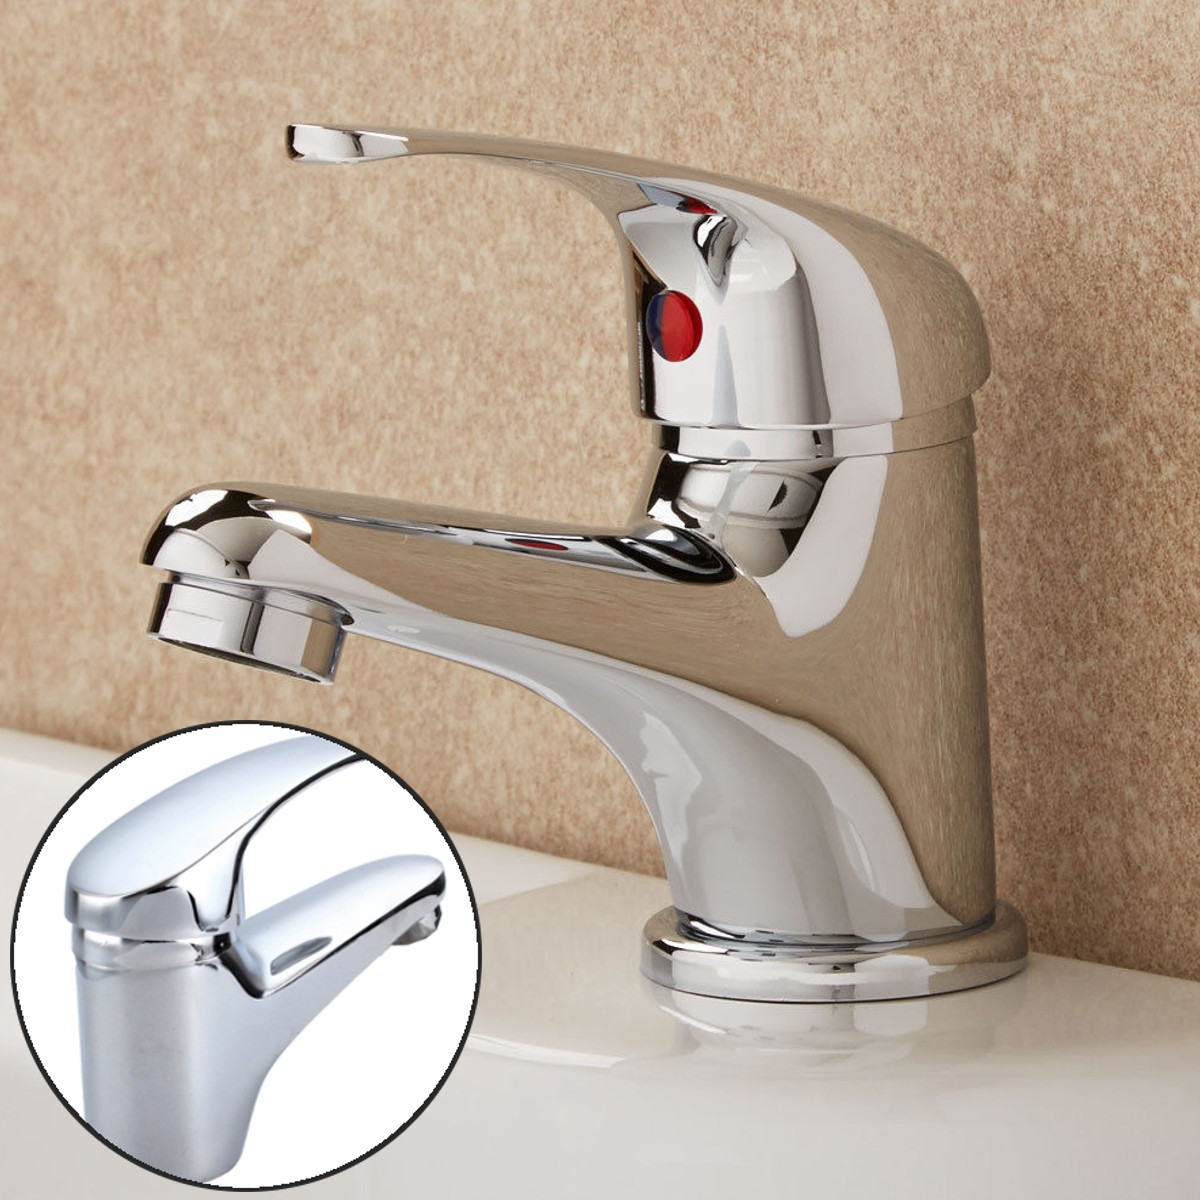 Brass Bathroom Sink Faucet Hot Cold Faucet